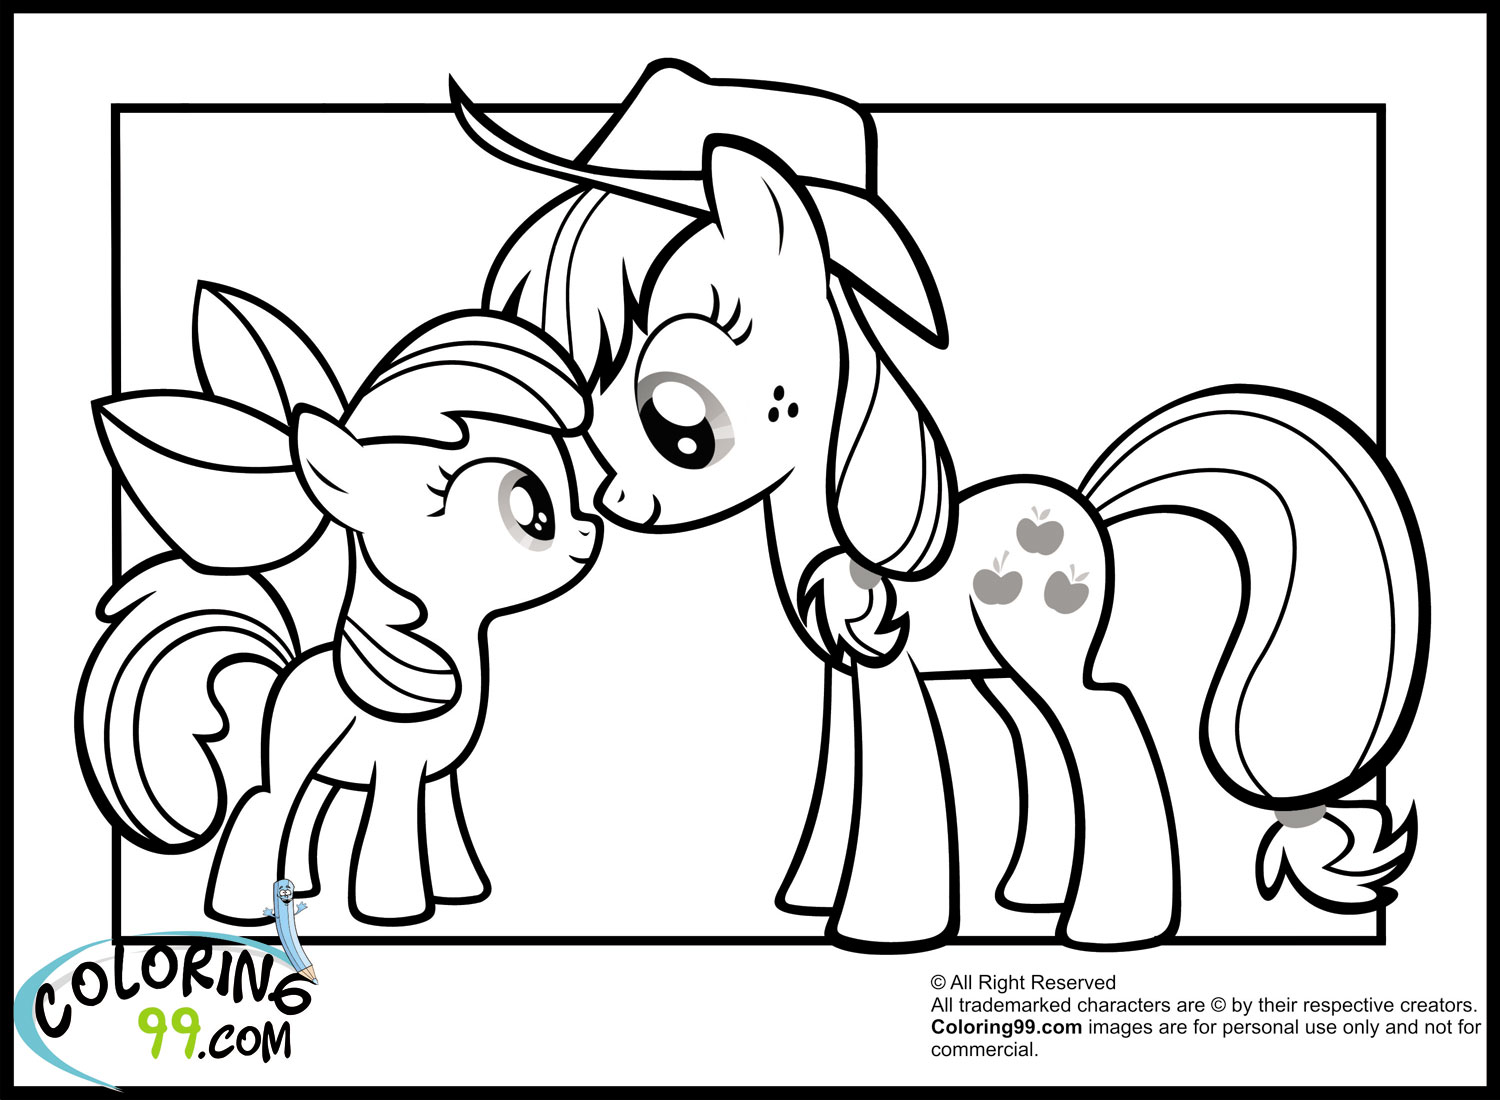 my apple book coloring pages - photo#21